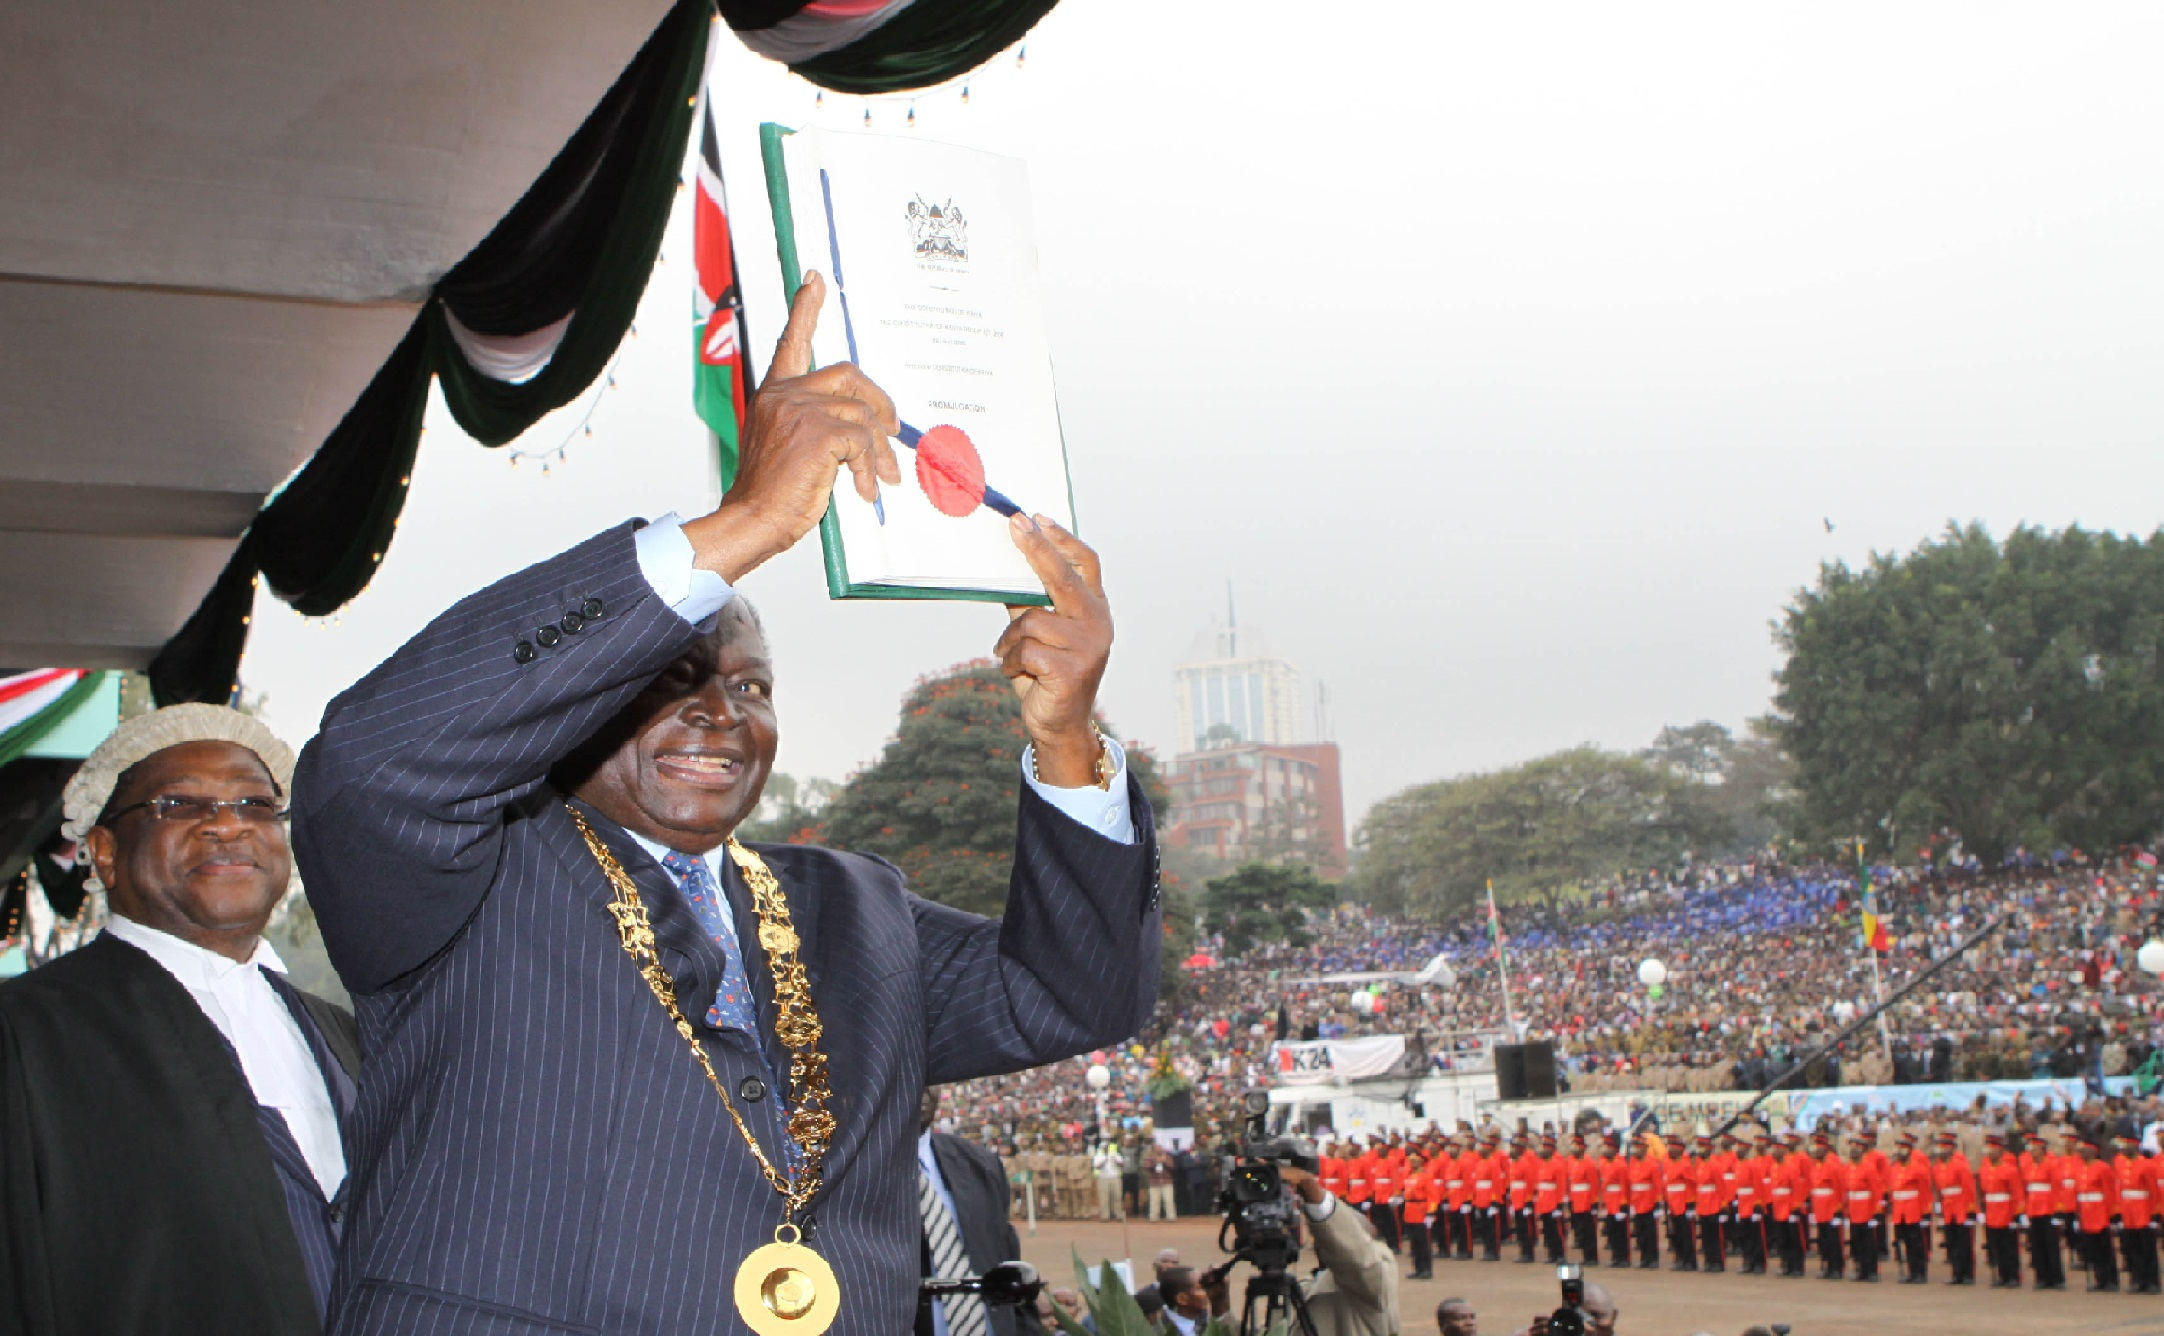 A bold move forward: Kenya's new constitutionproves skeptics wrong